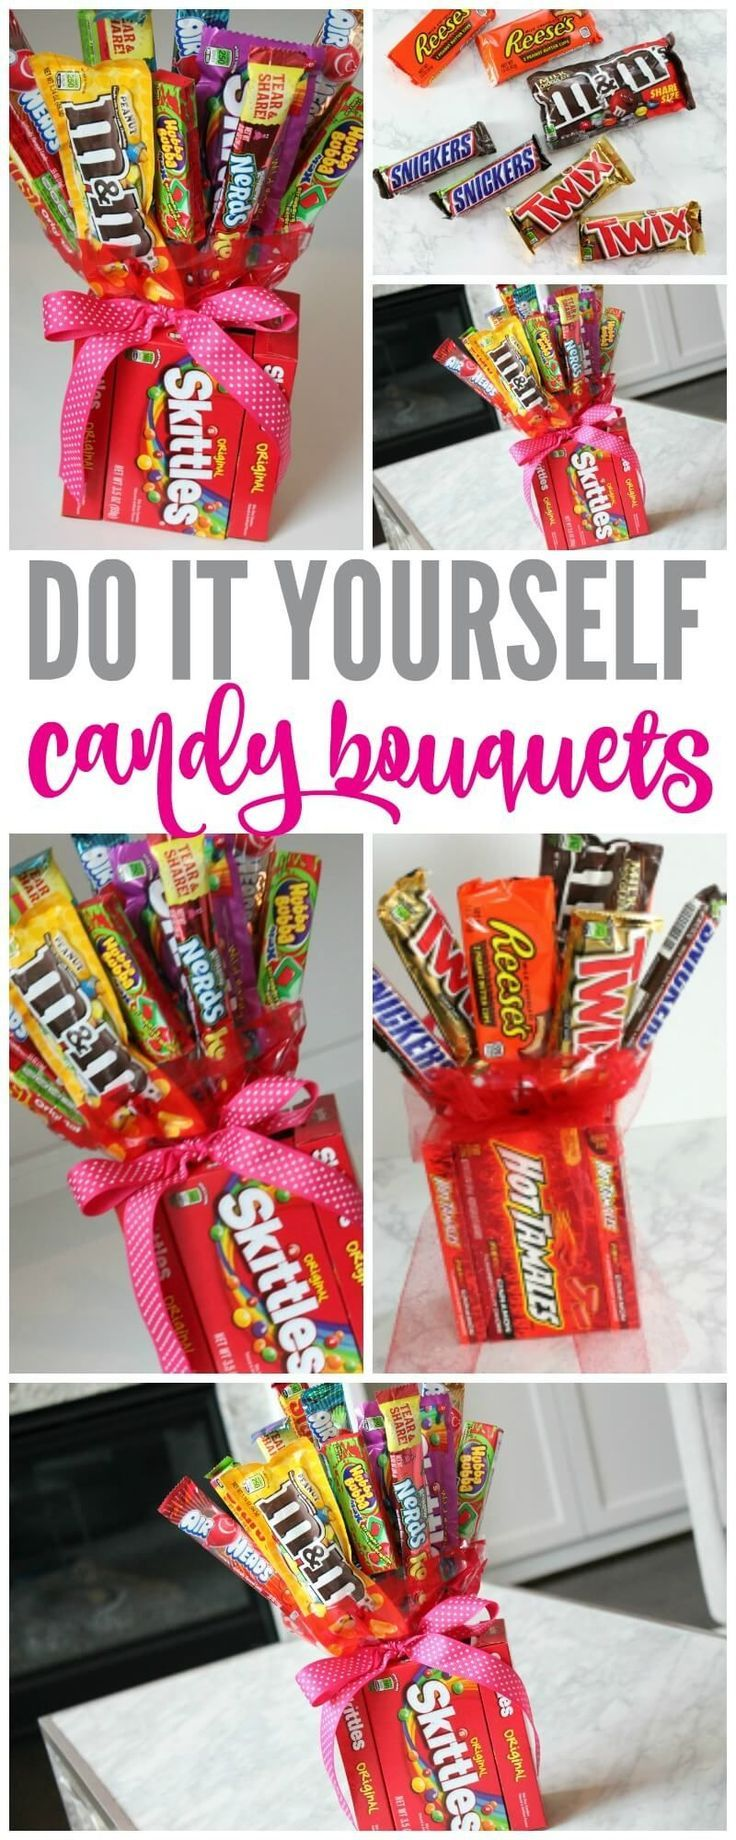 Diy candy bouquets fun and easy gift idea for valentines day or diy candy bouquets fun and easy gift idea for valentines day or for teachers solutioingenieria Choice Image